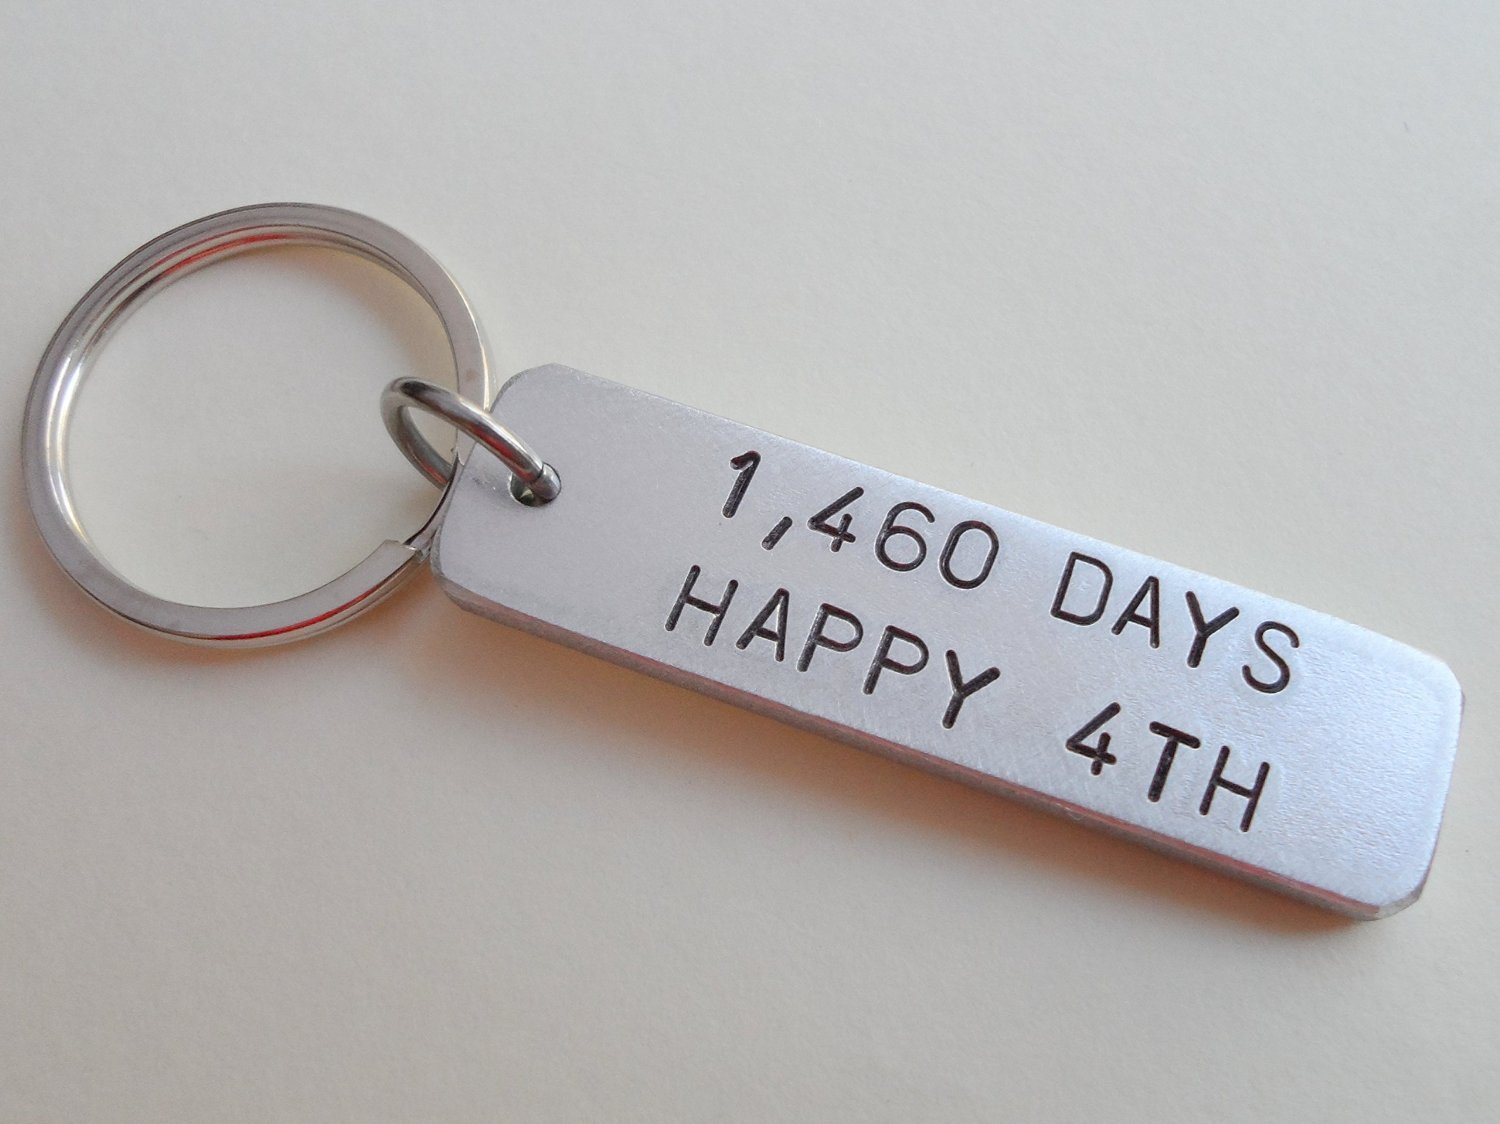 it's a key chain showing 4th year anniversary as a gift